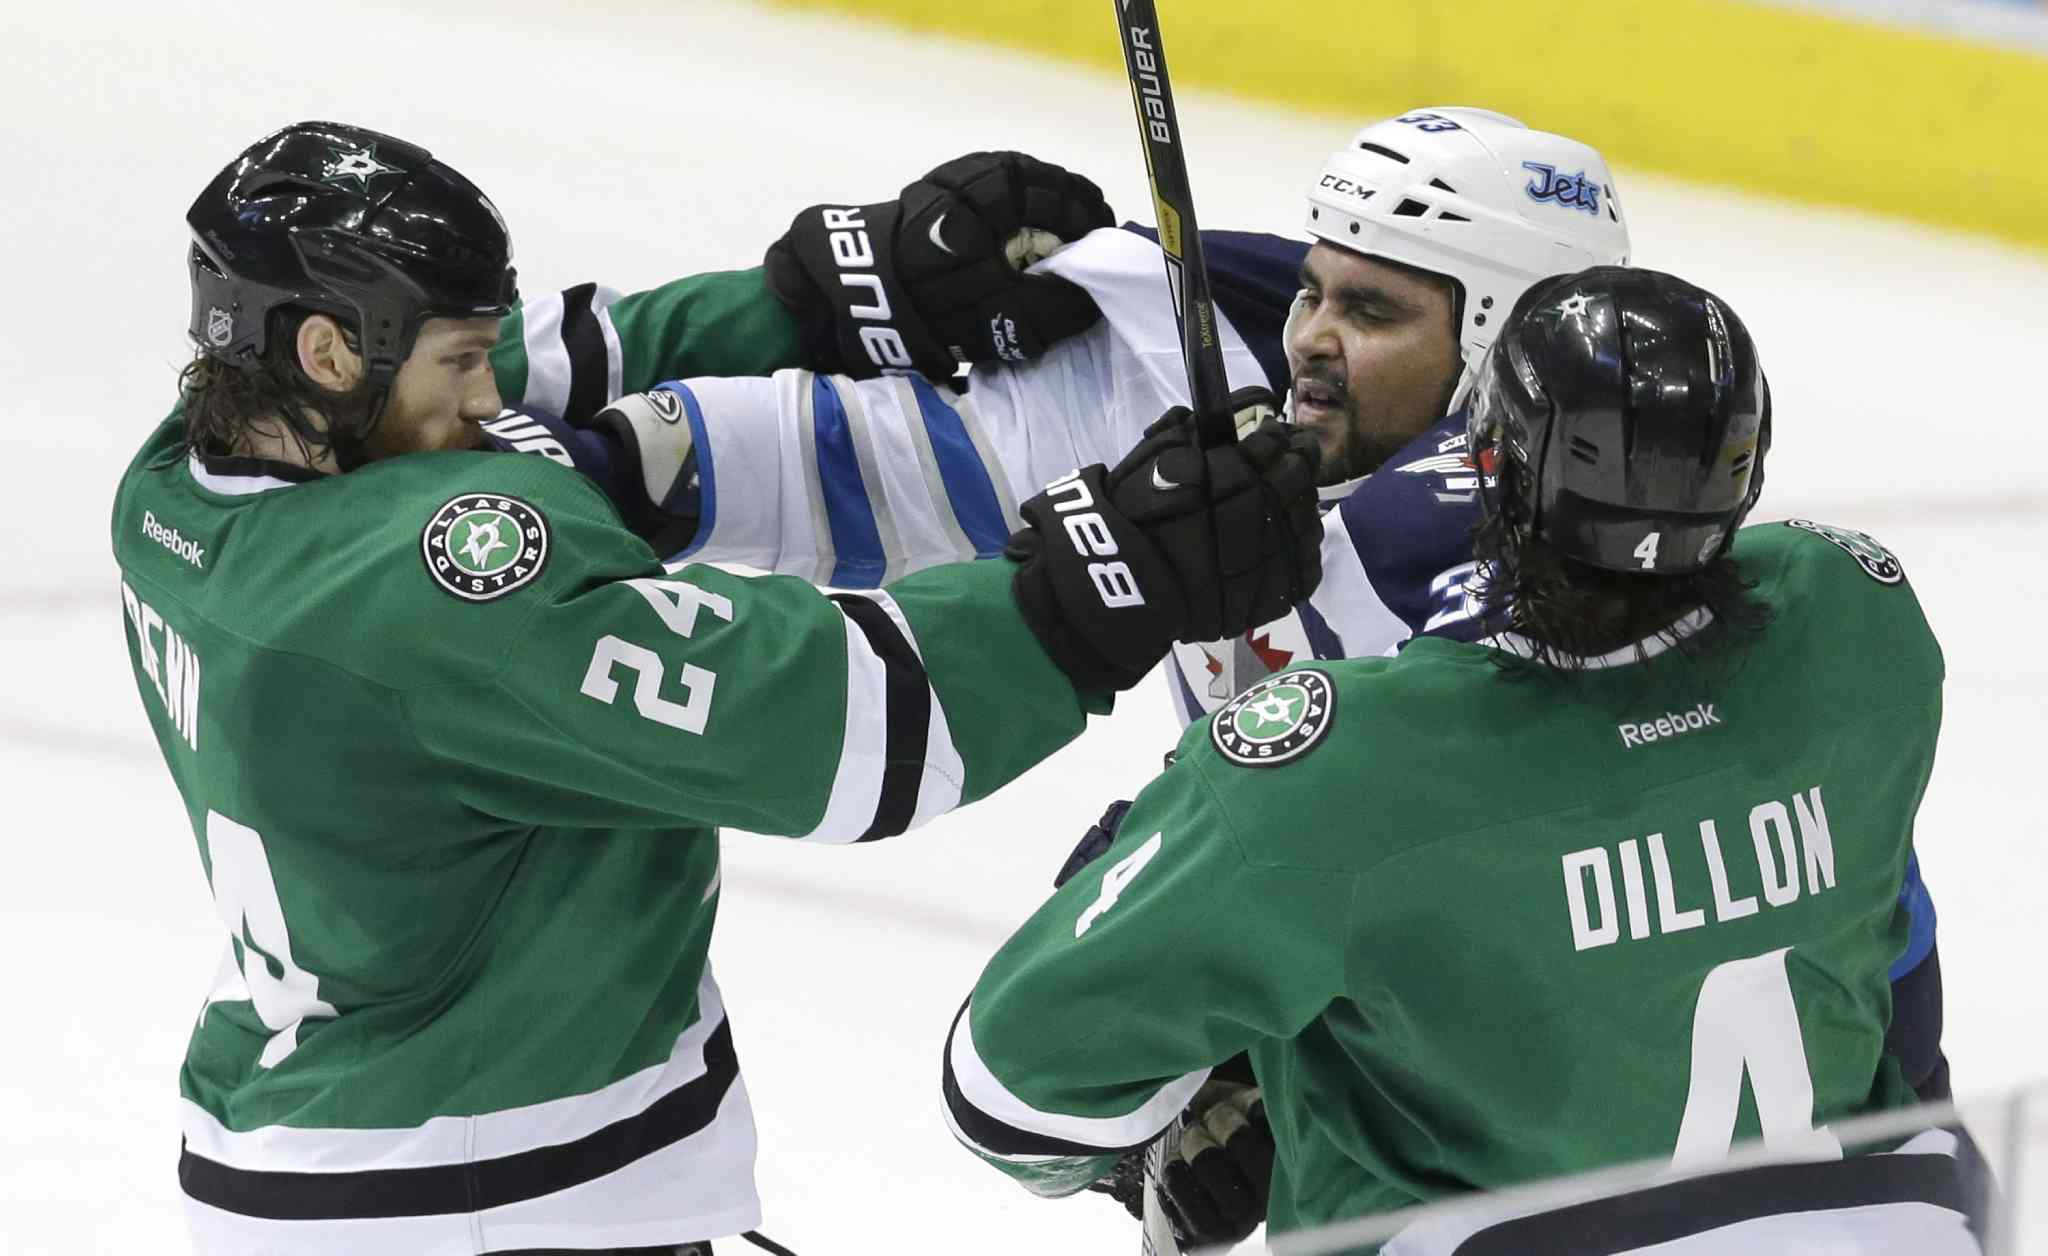 Winnipeg Jets forward Dustin Byfuglien tangles with Dallas Stars defencemen Jordie Benn (left) and Brenden Dillon during the third period.